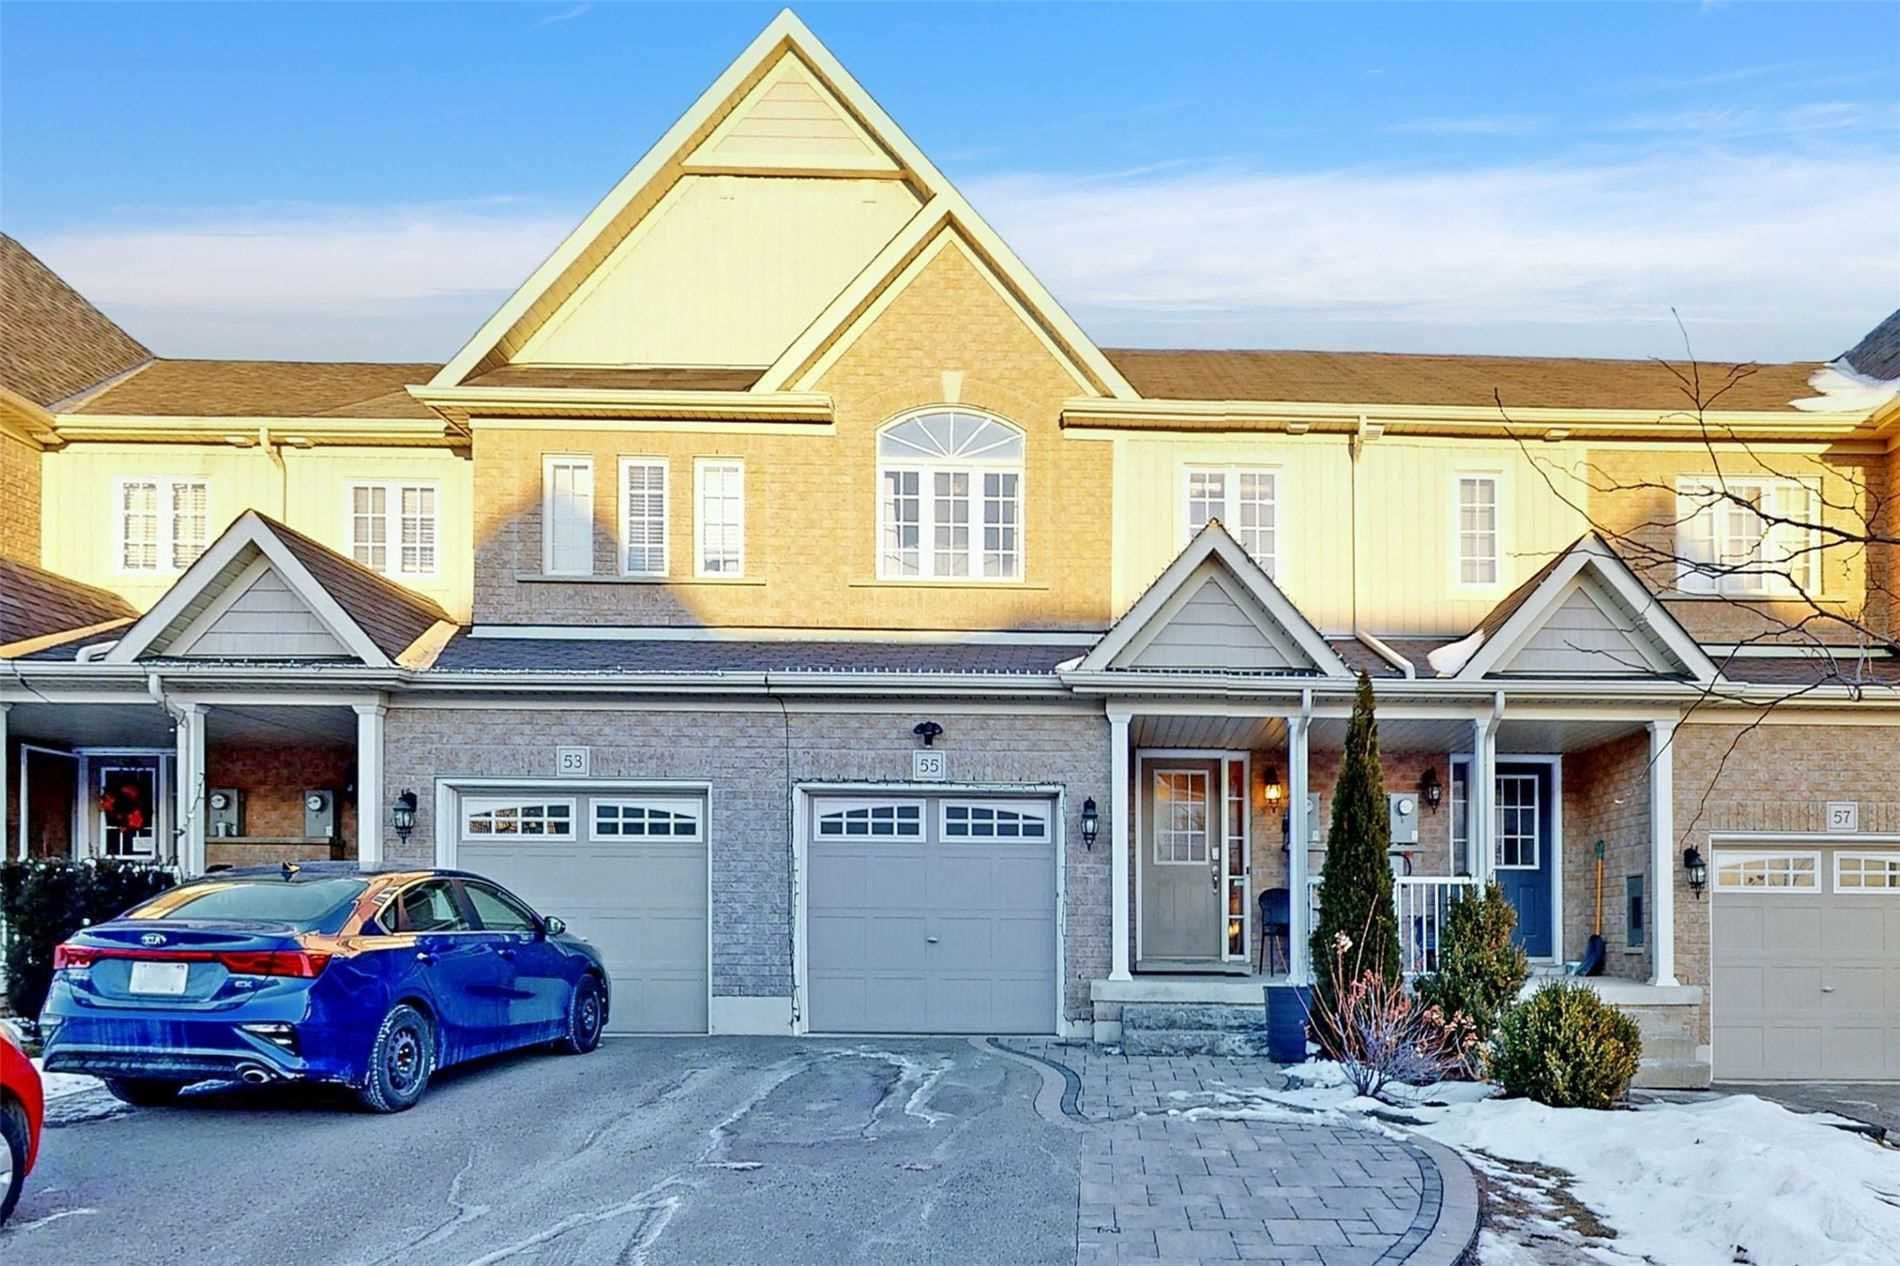 Main Photo: 55 Westover Drive in Clarington: Bowmanville House (2-Storey) for sale : MLS®# E5113652